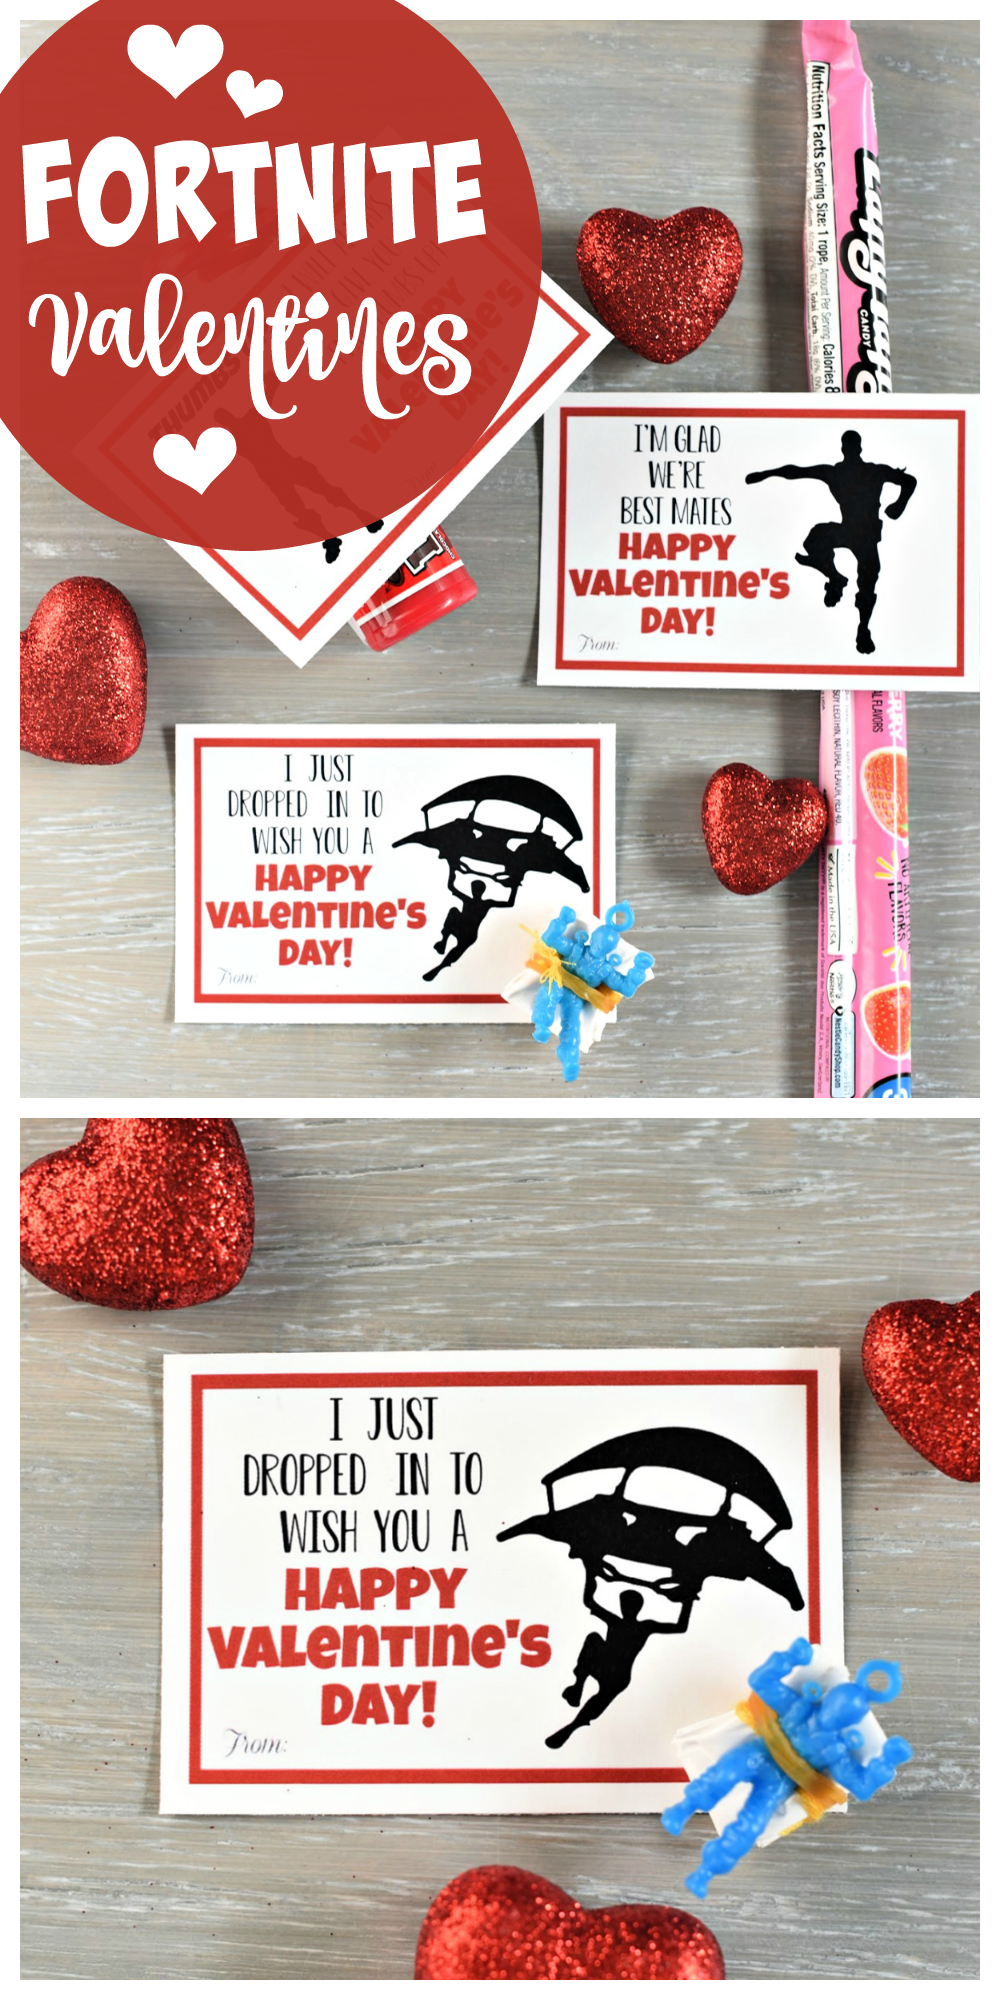 Fortnite Valentines to print and give this Valentine's Day! Your kids will love these printable Fortnite Valentine cards. A great boys Valentine idea especially. #valentinesday